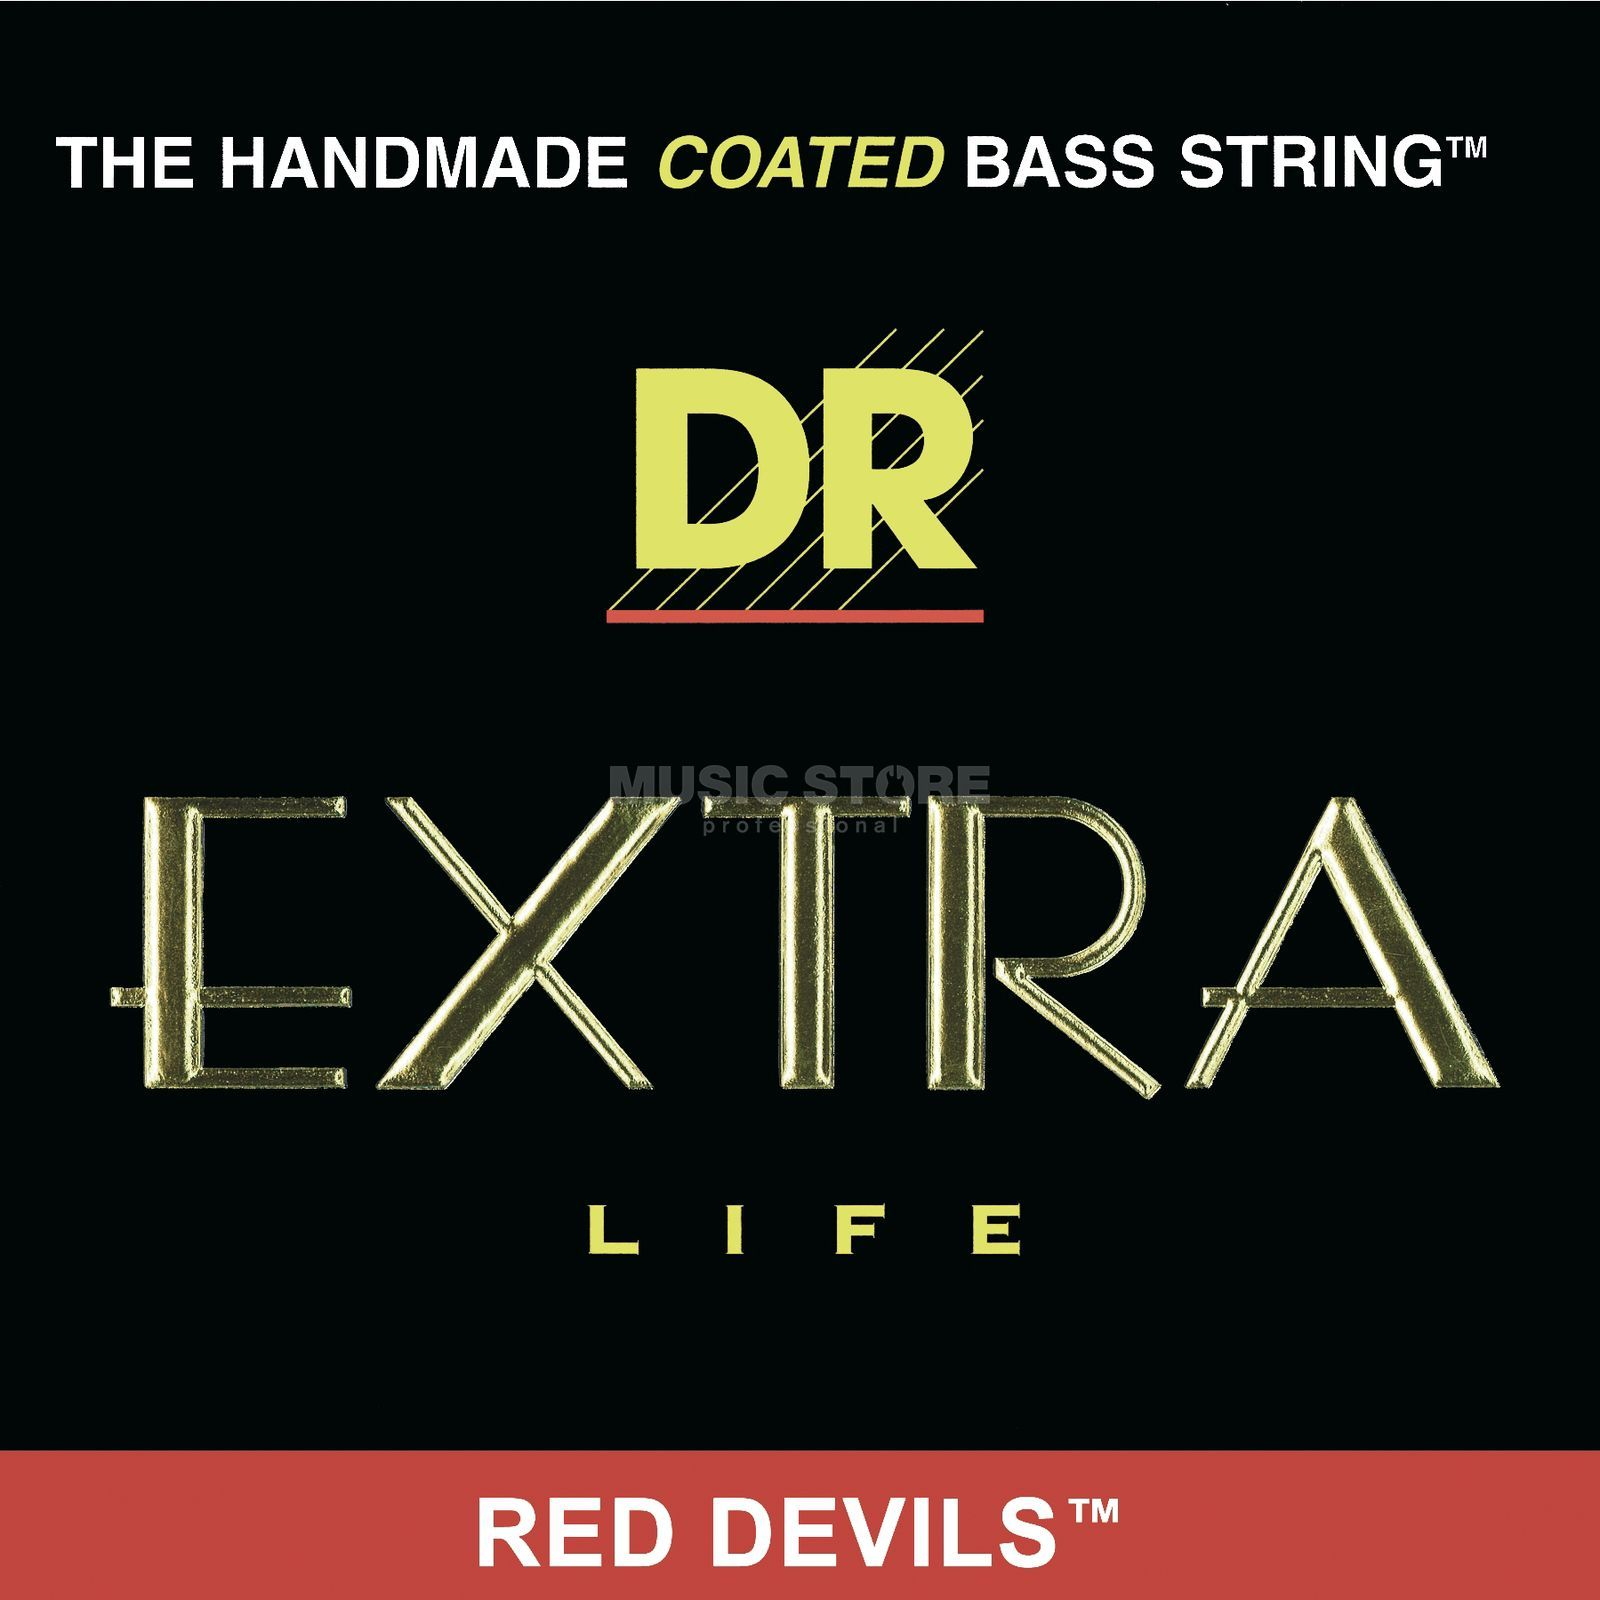 DR 4er bas 45-105 Extra-Life rood Devils RDB-45 Productafbeelding